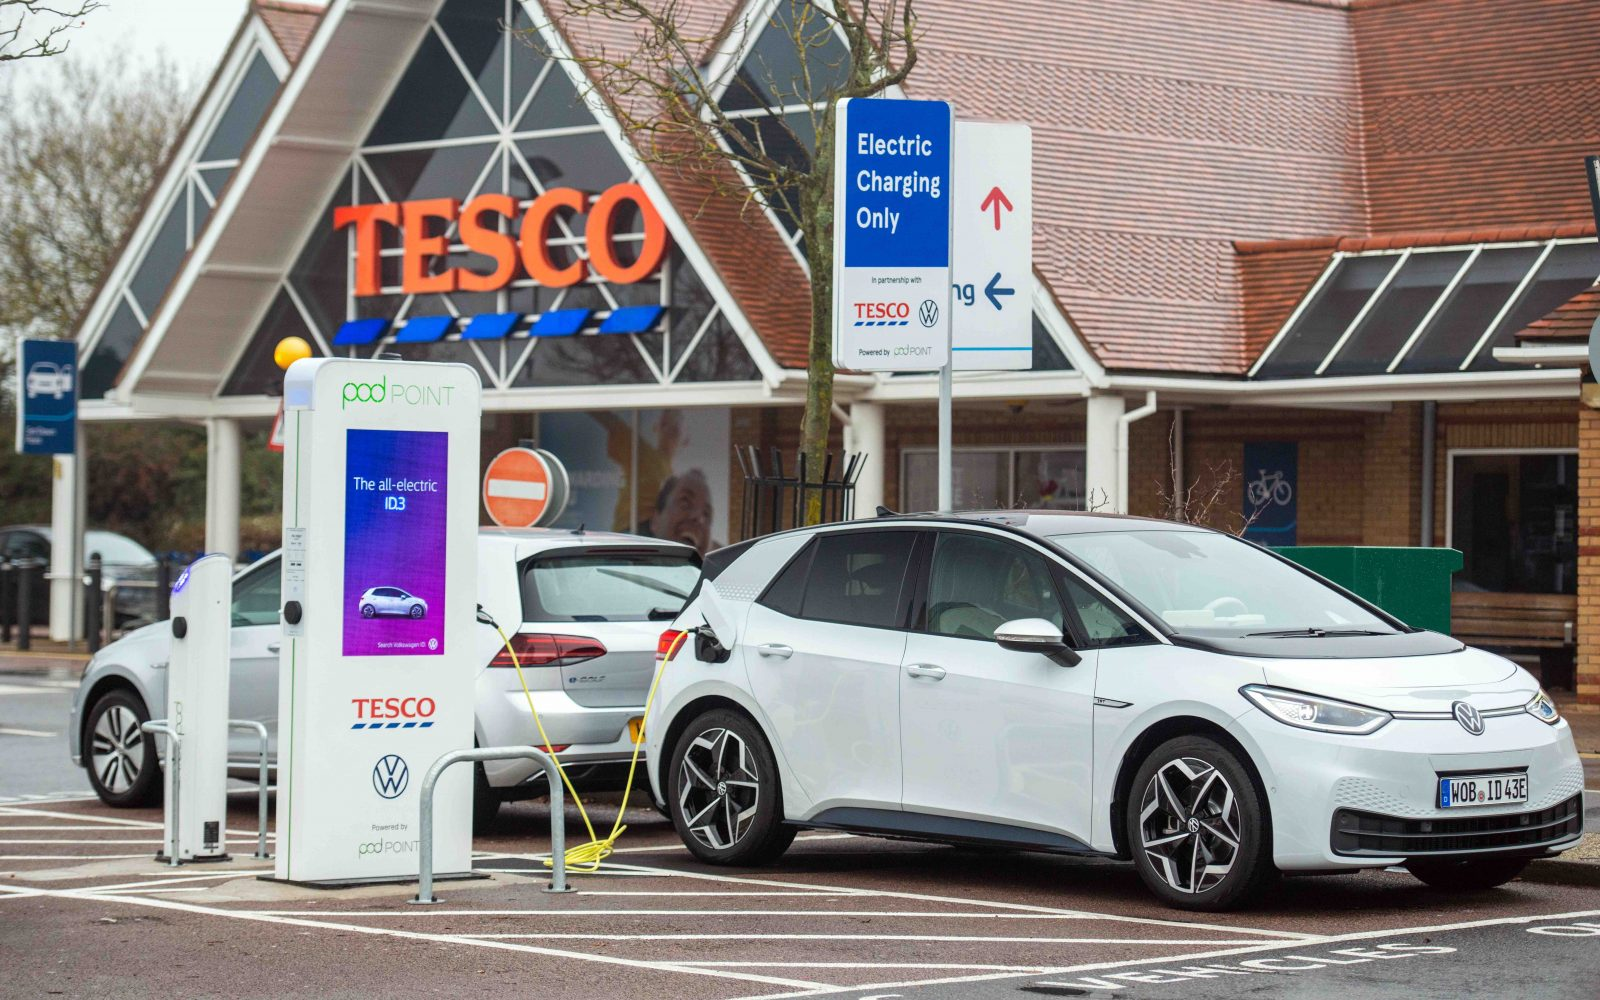 Image: Tesco/Pod Point